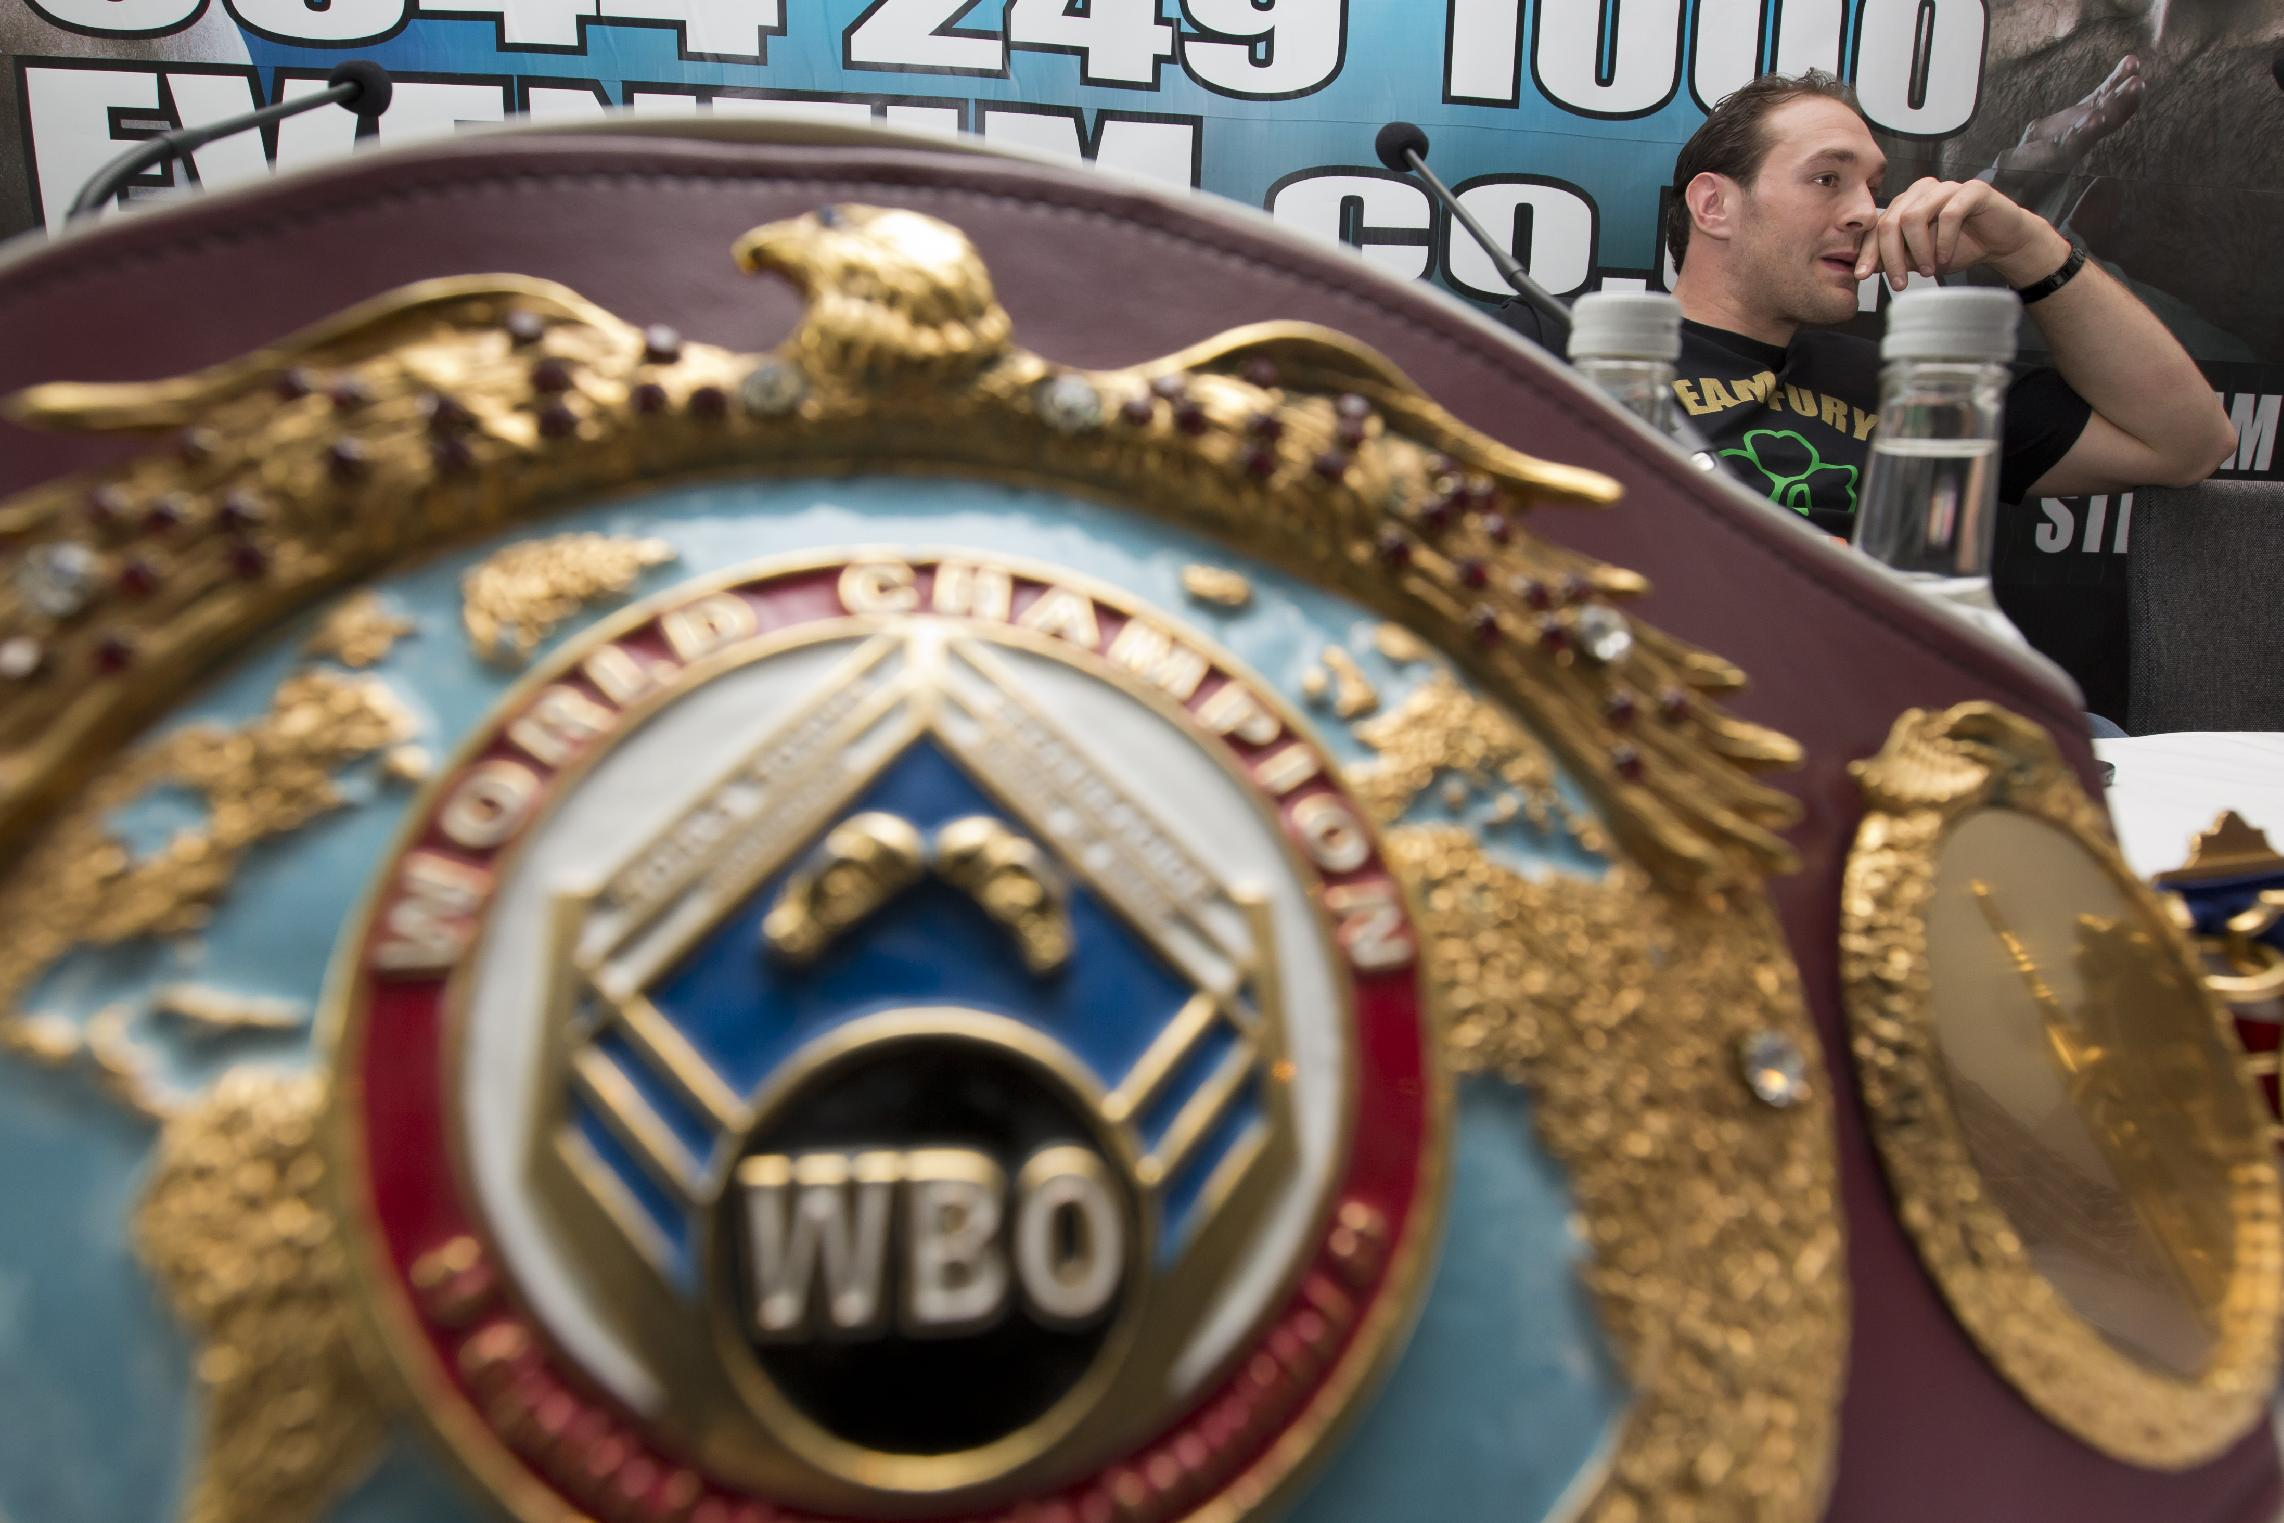 Boxer Tyson Fury lives up to name at media event